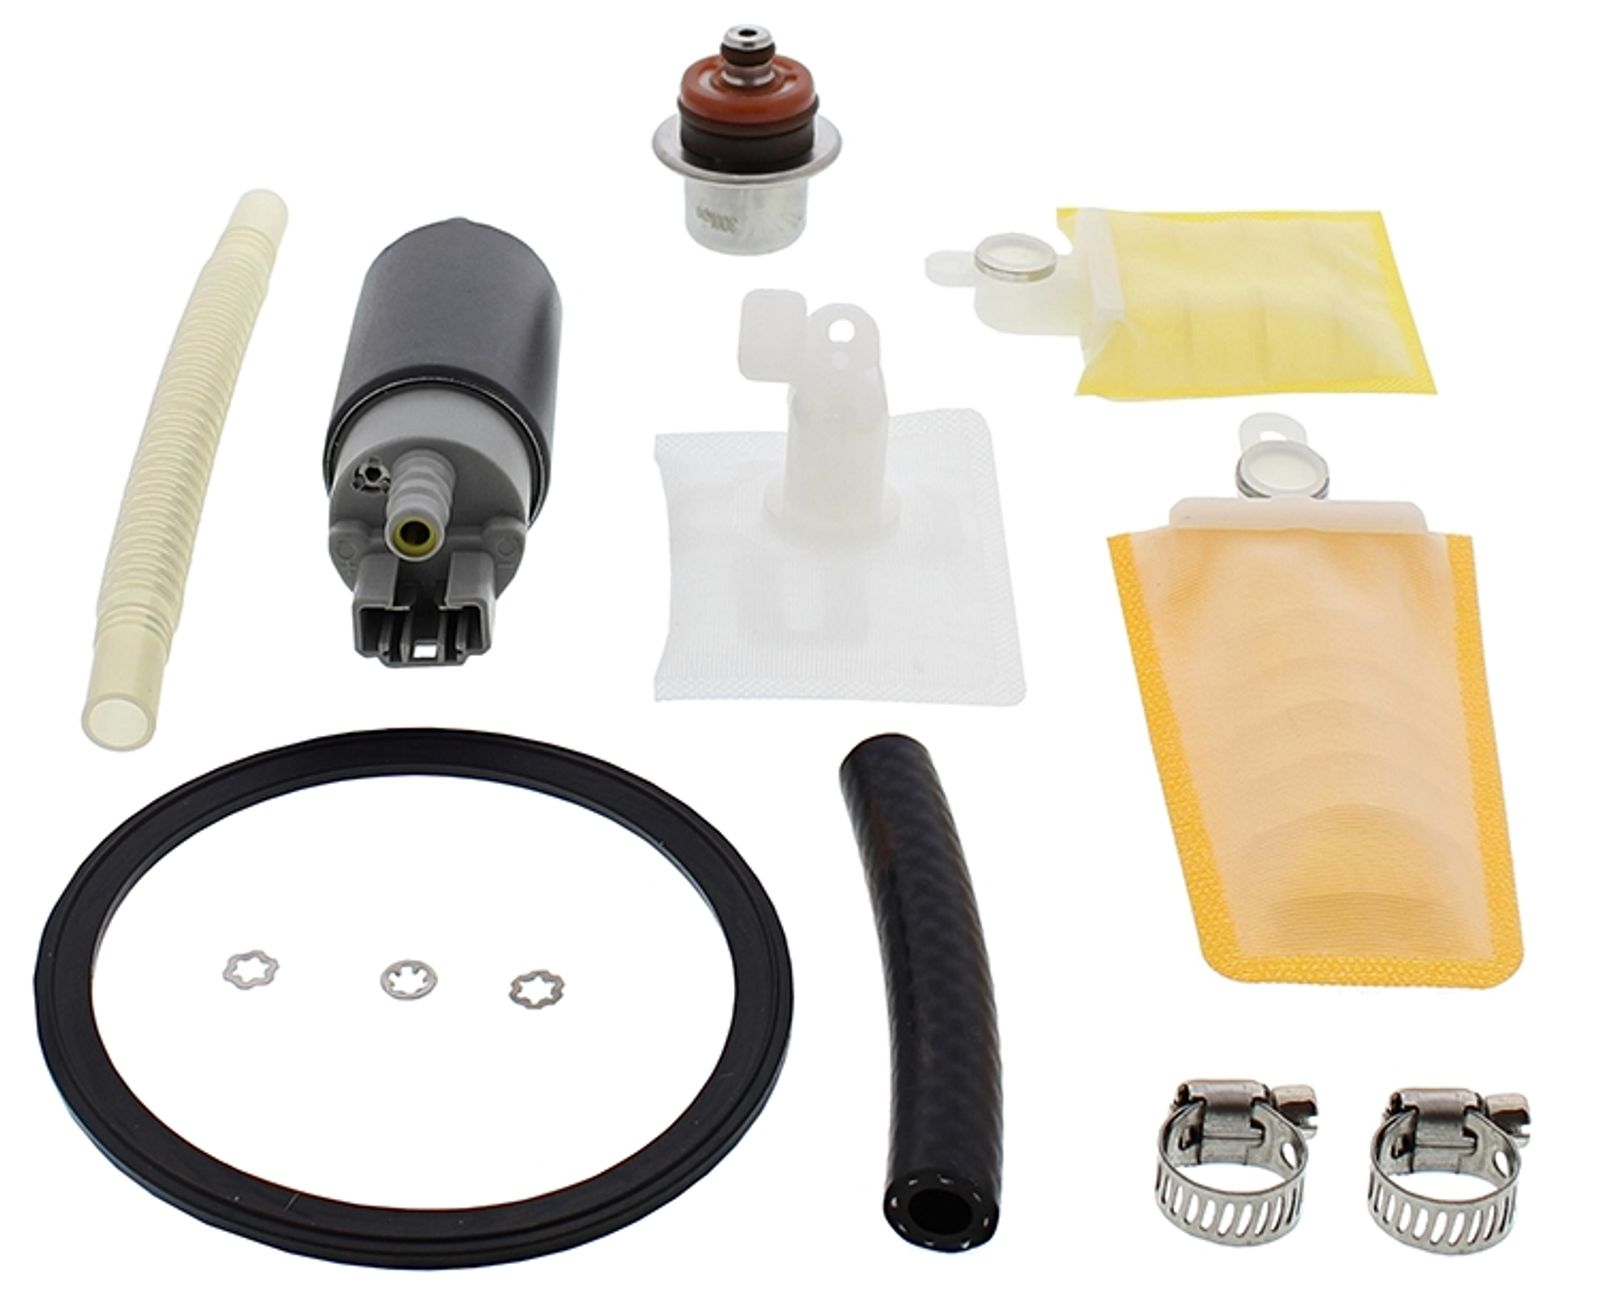 Wrp Fuel Pumps - WRP472015 image